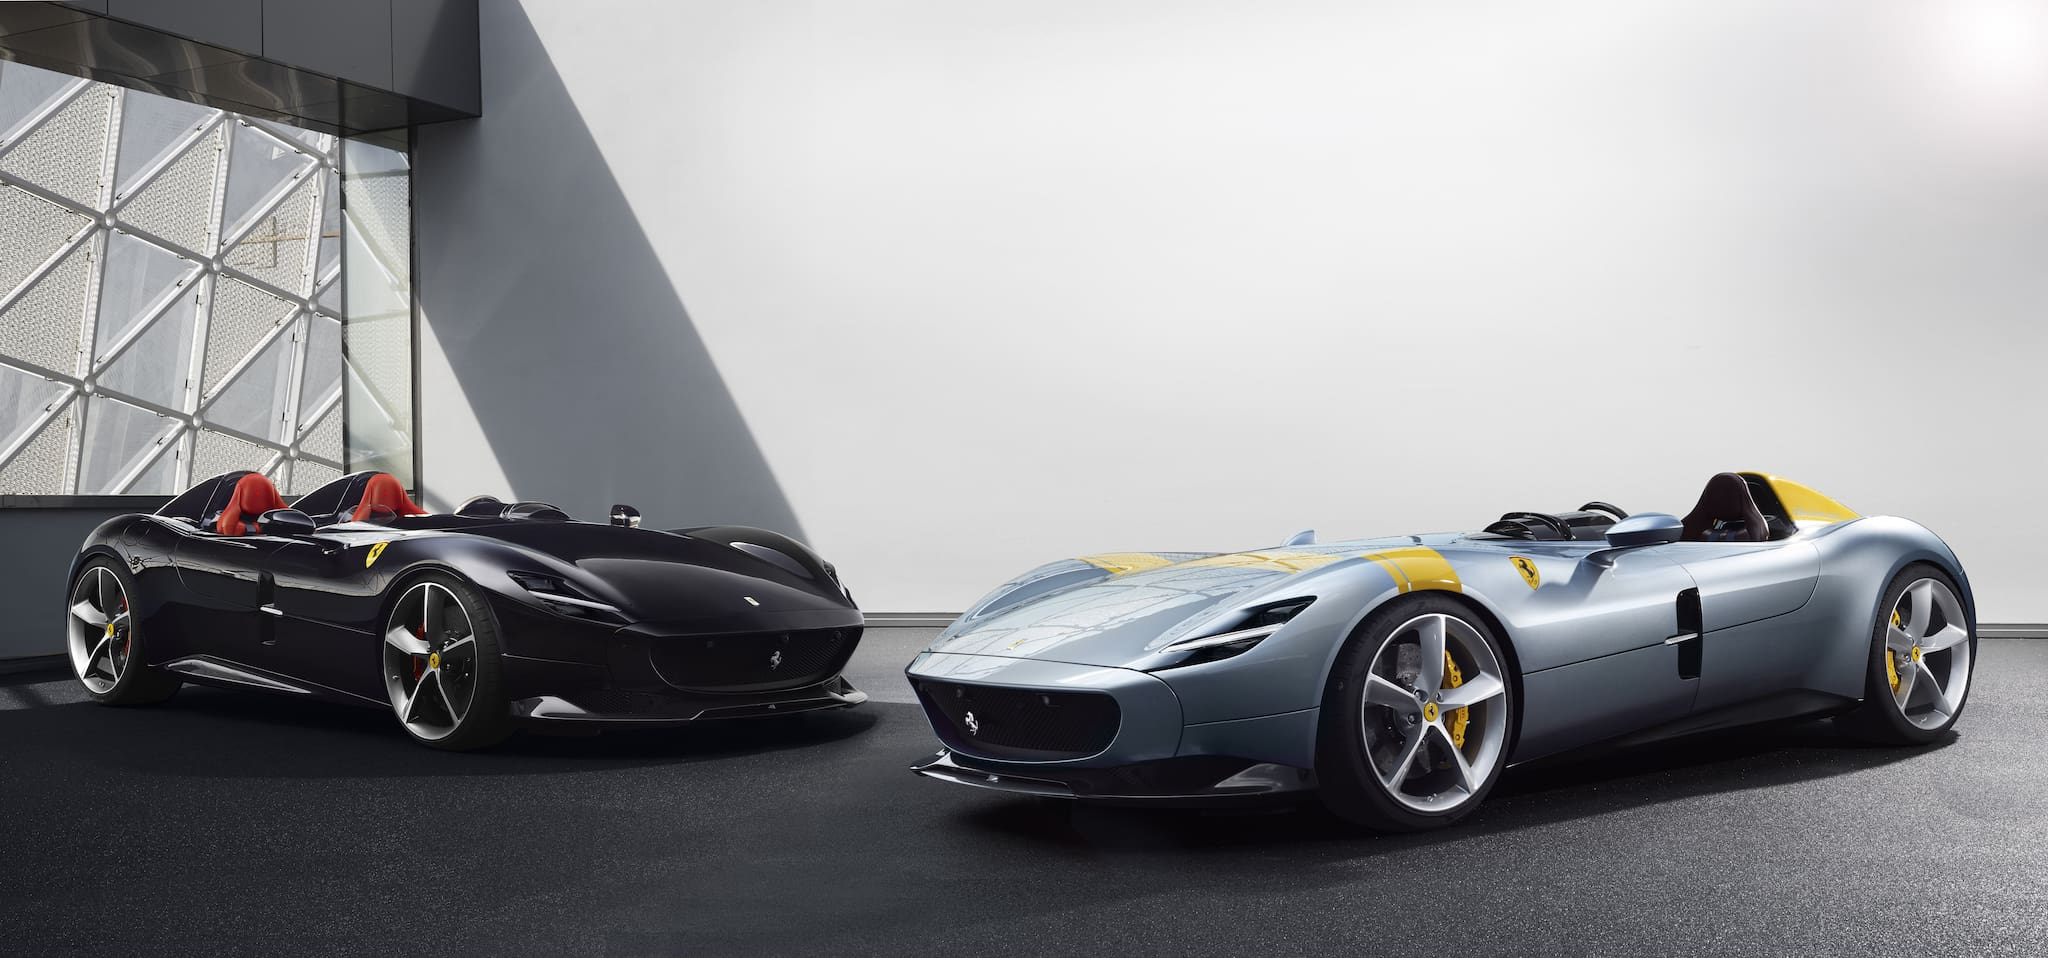 Ferrari Monza SP1 and SP2--First Models in New Concept, Limited-Edition Special 'Icona' Series